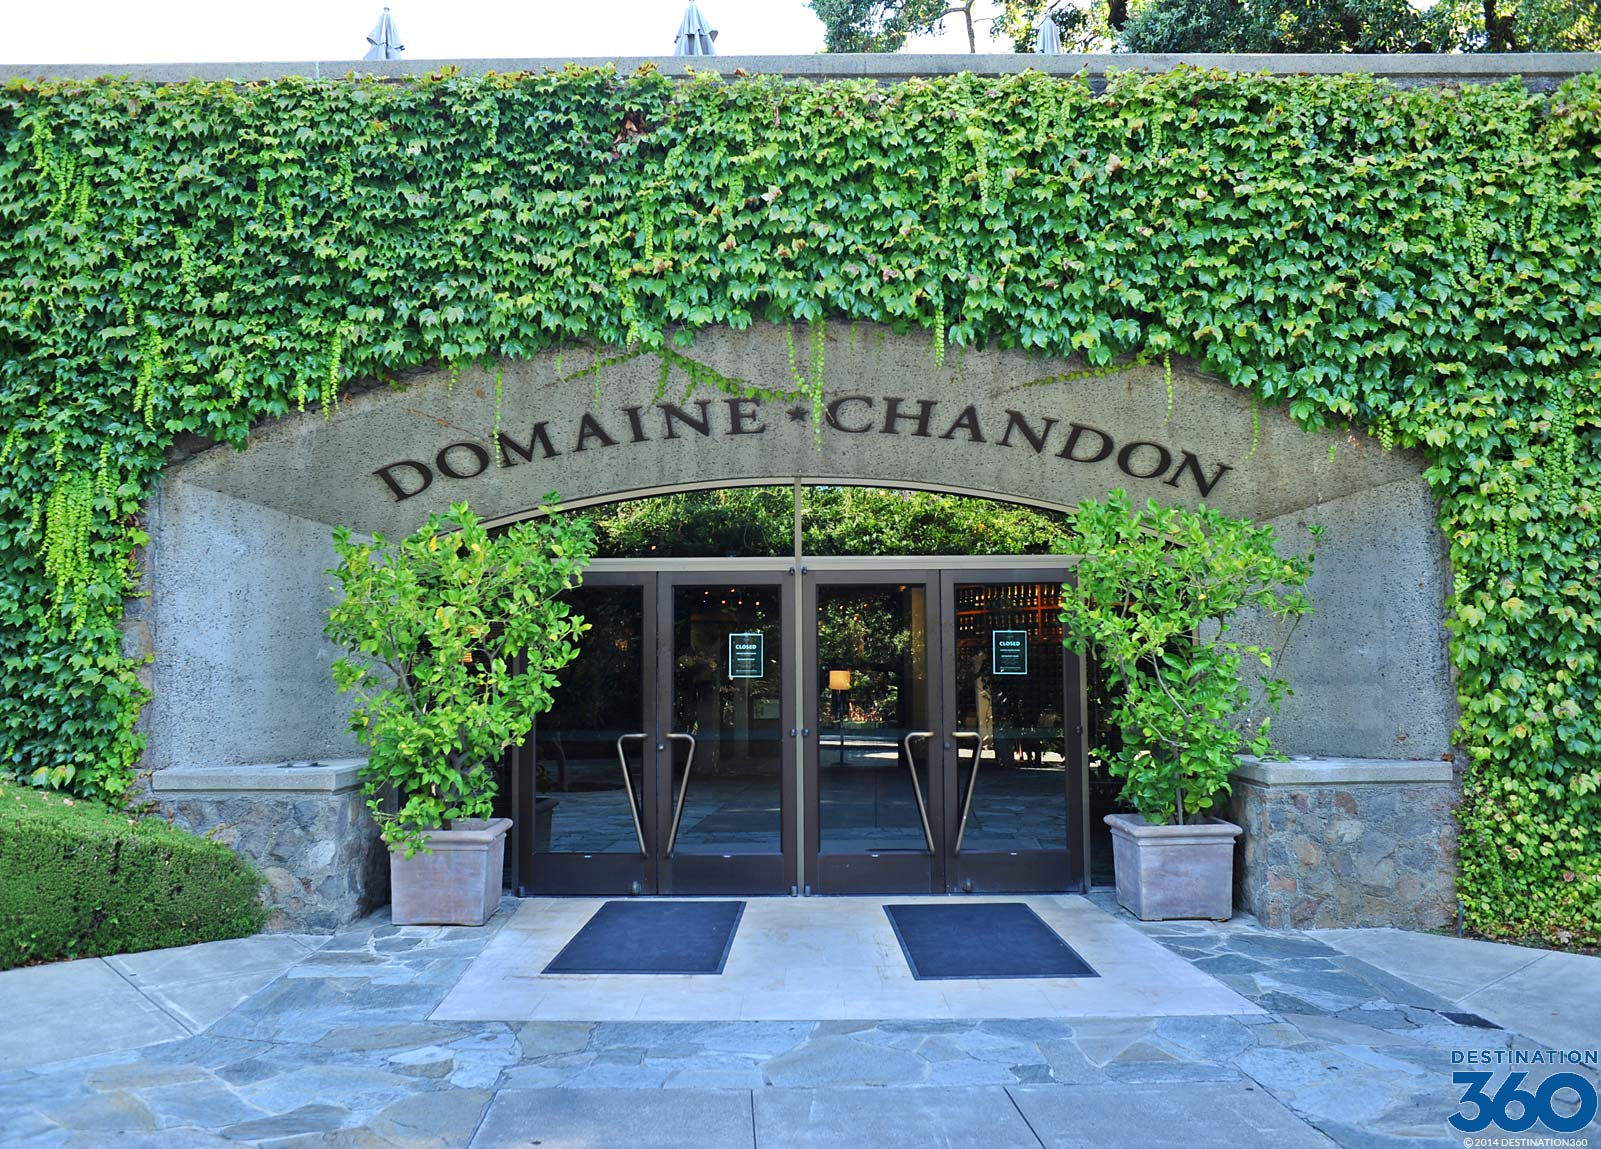 Domaine Chandon Virtual Tour